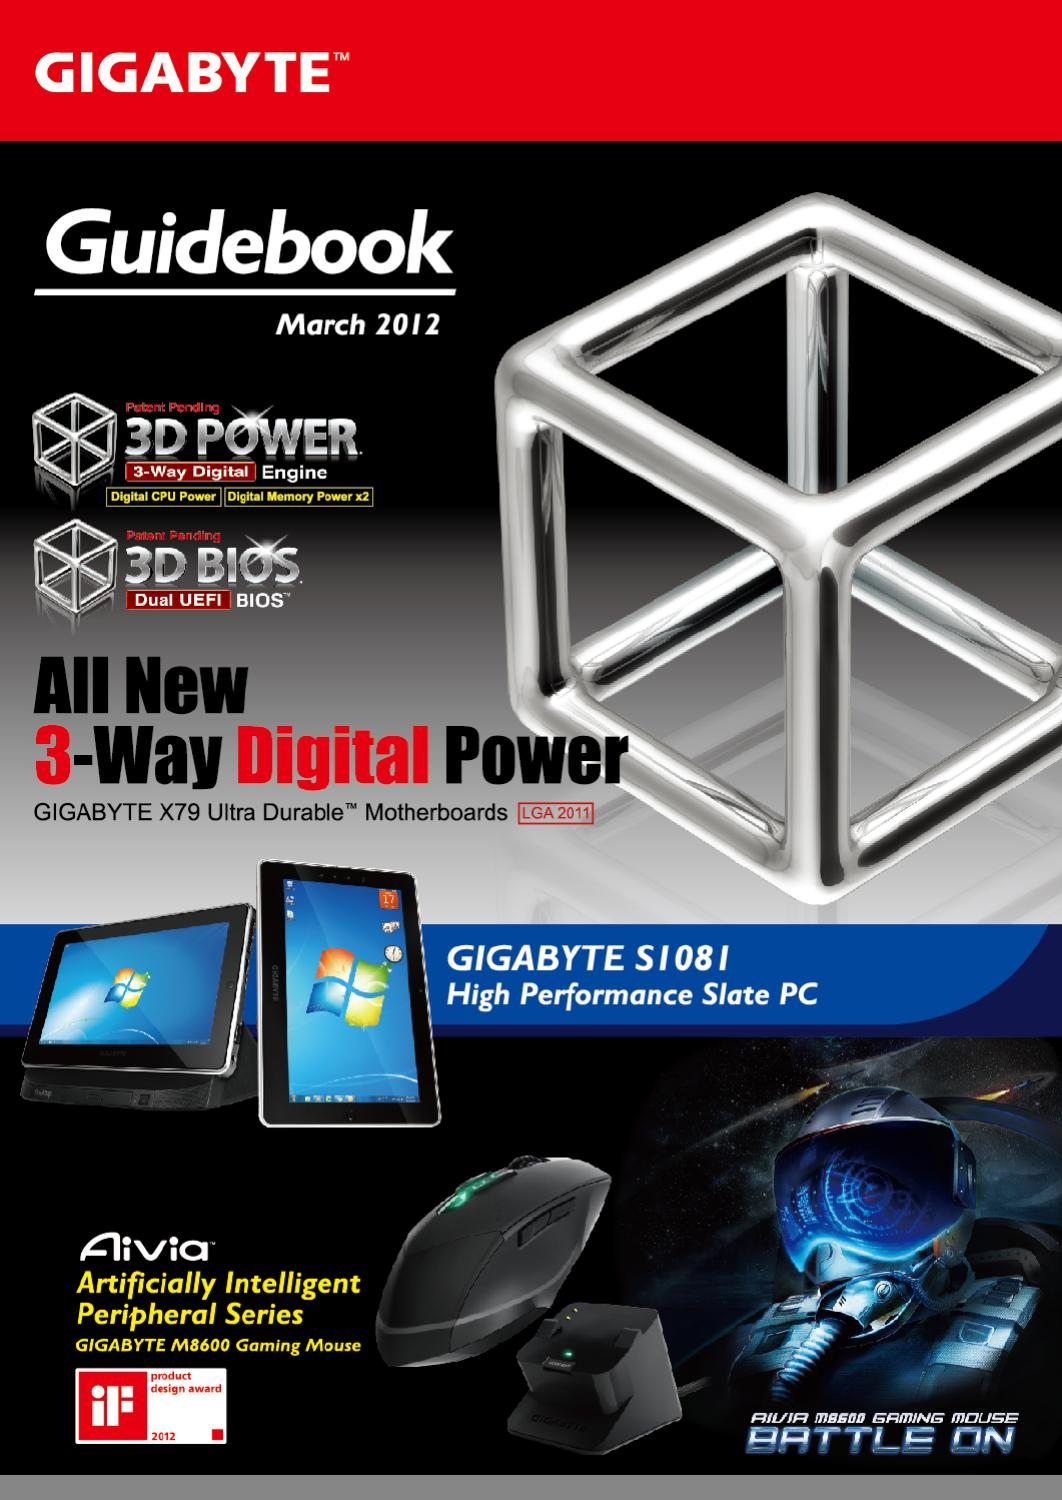 GIGABYTE Guidebook March 2012 by GIGABYTE Technology - issuu